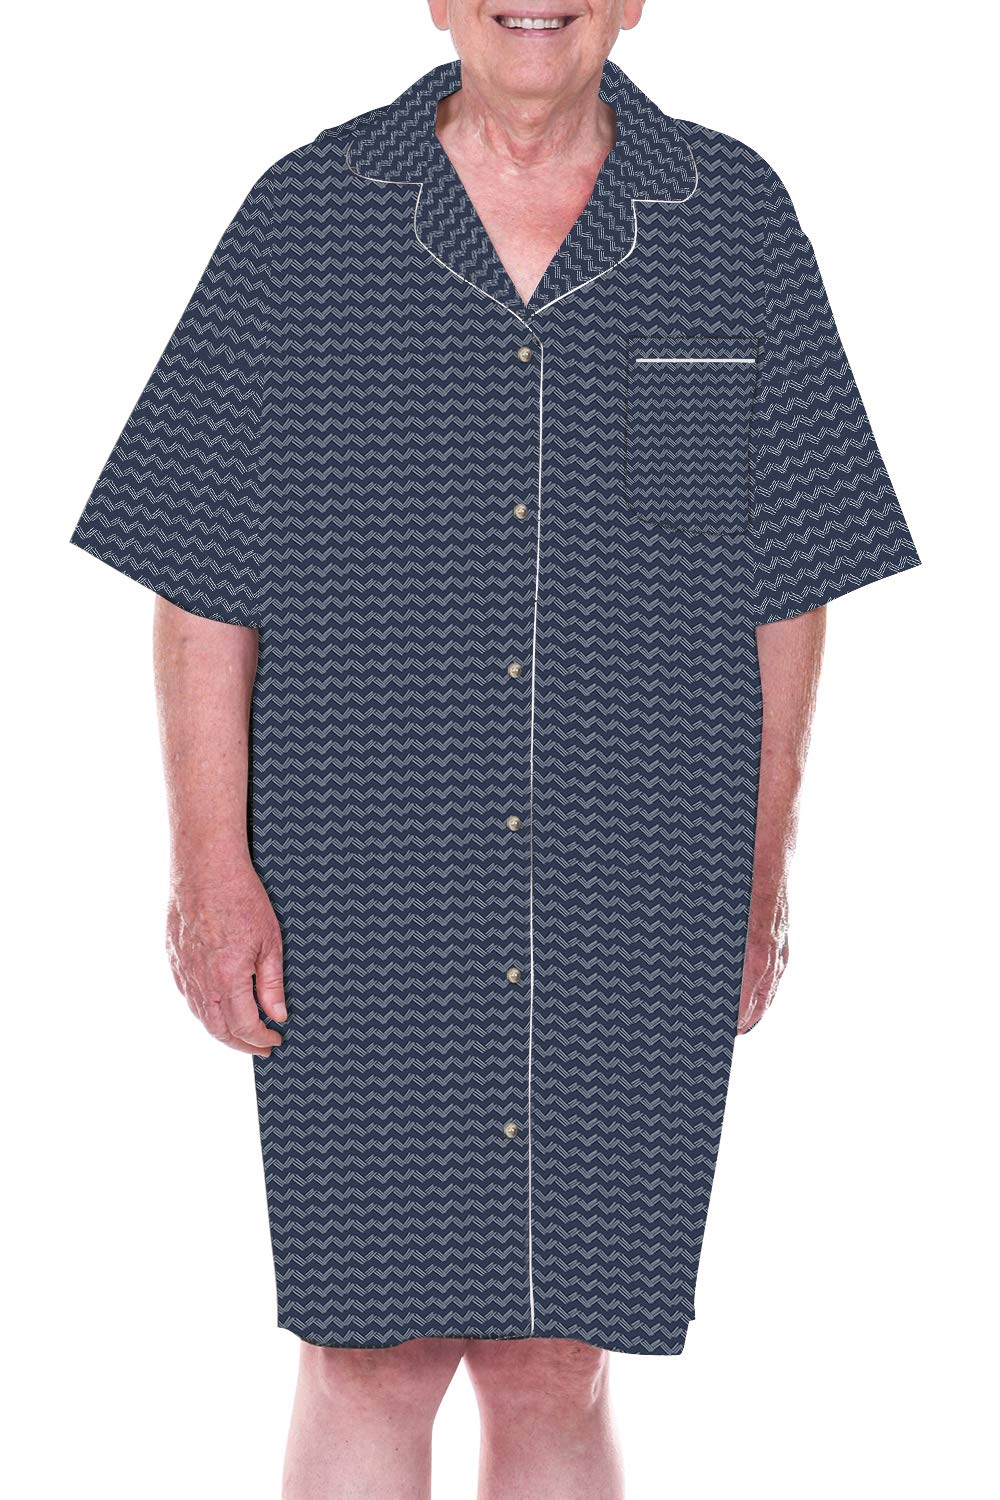 DIGNITY PAJAMAS Mens Cotton Short Sleeve Adaptive Open Back Hospice Patient Gown Sleepwear-Navy White Zigzag (S/M)